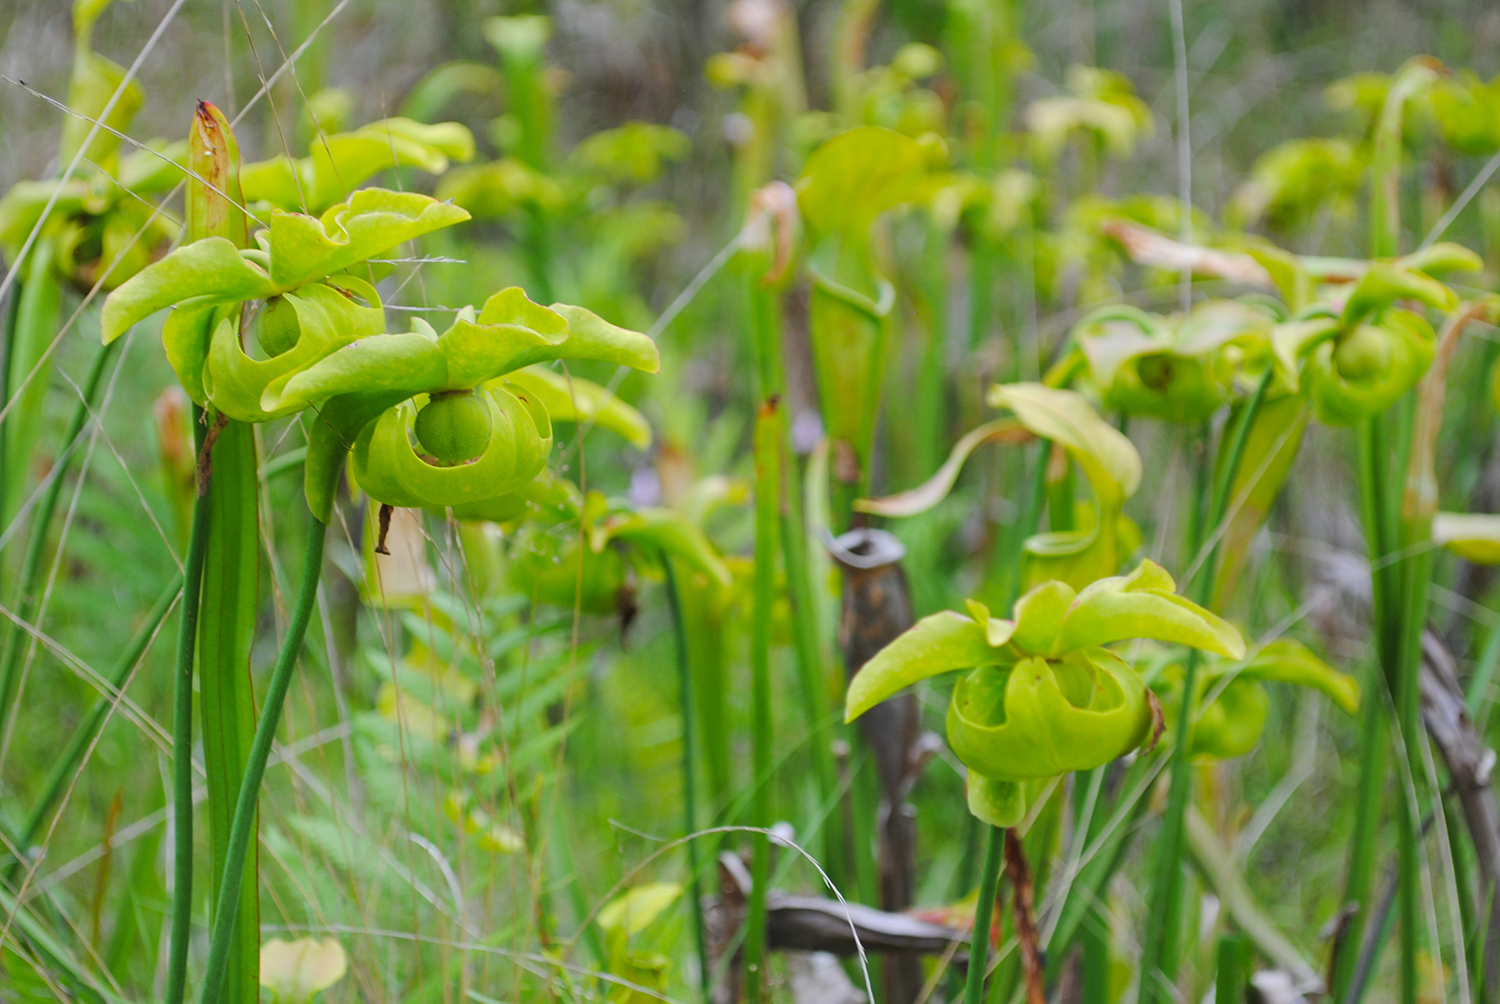 A closeup of the flowers of  Sarracenia alata